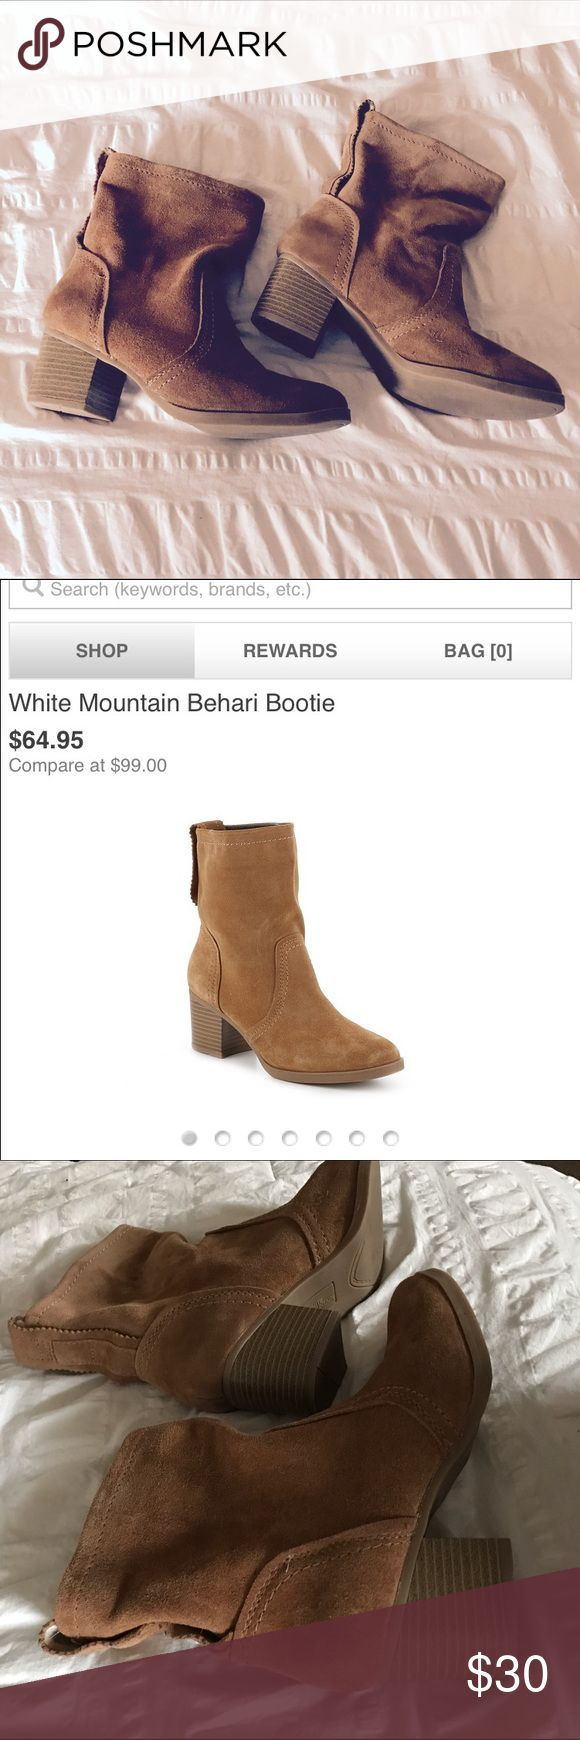 Behari Bootie White Mountain behari bootie. Worn once, in perfect condition. These babies are so comfortable and cute! White Mountain Shoes